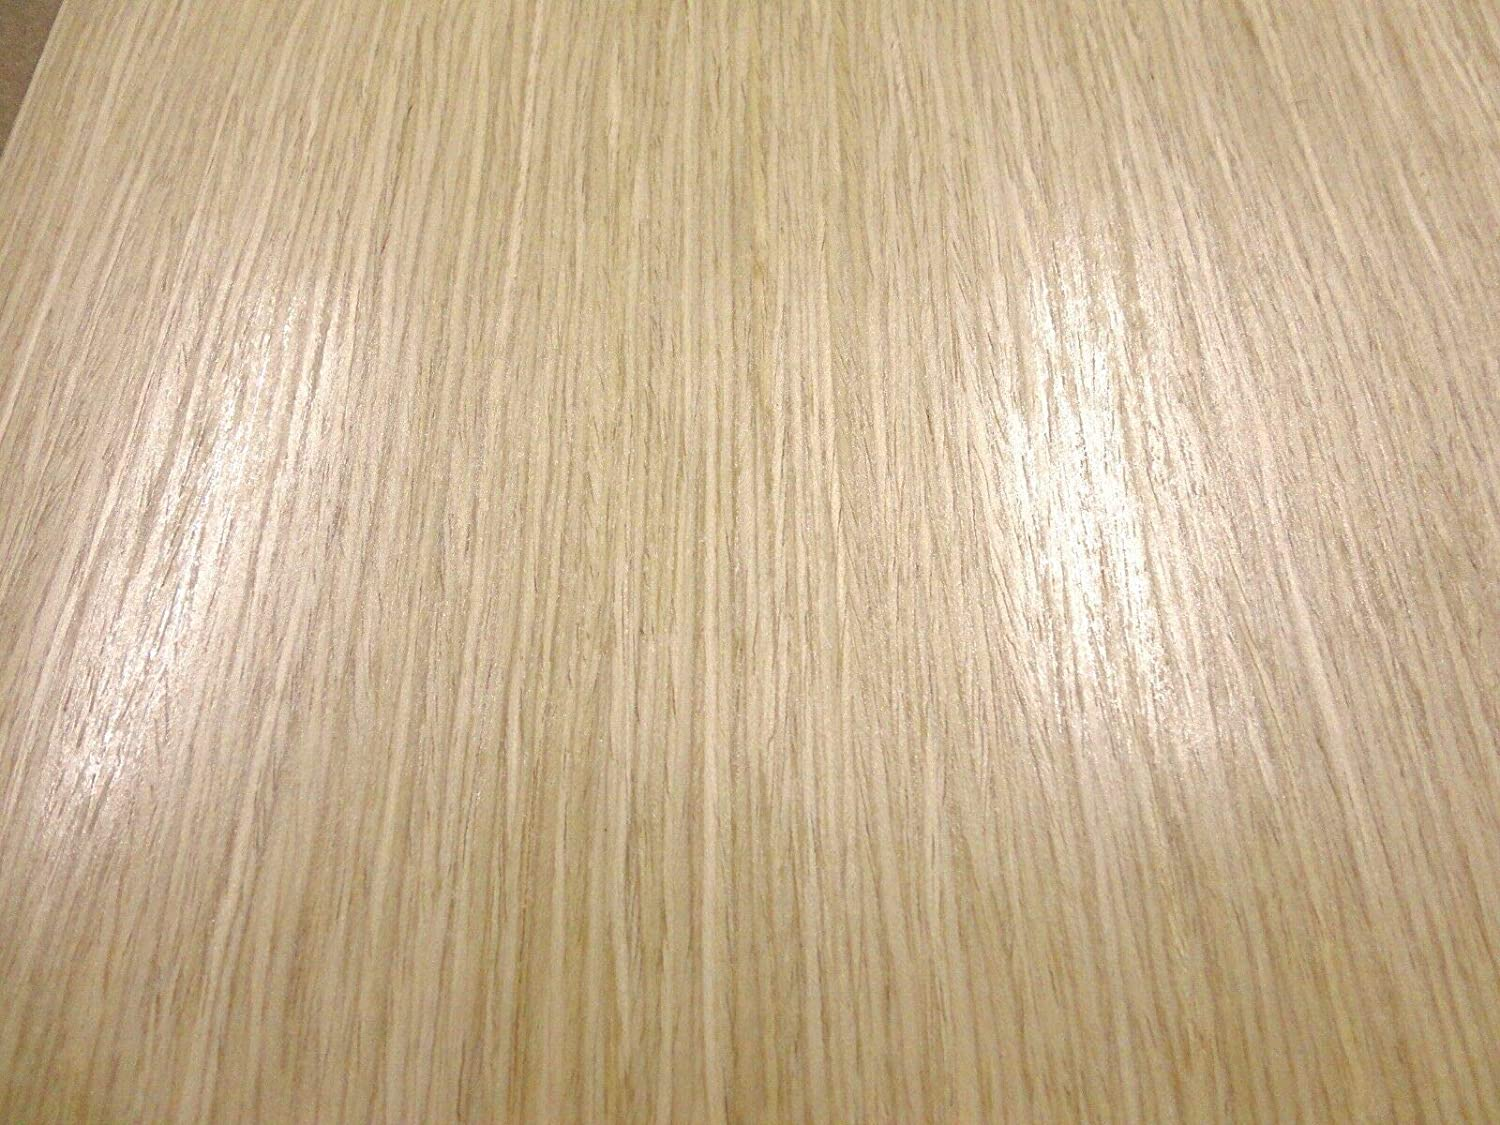 "Red Oak wood veneer 24/"" x 24/"" with paper backer 1//40th/"" thickness /""A/"" grade"